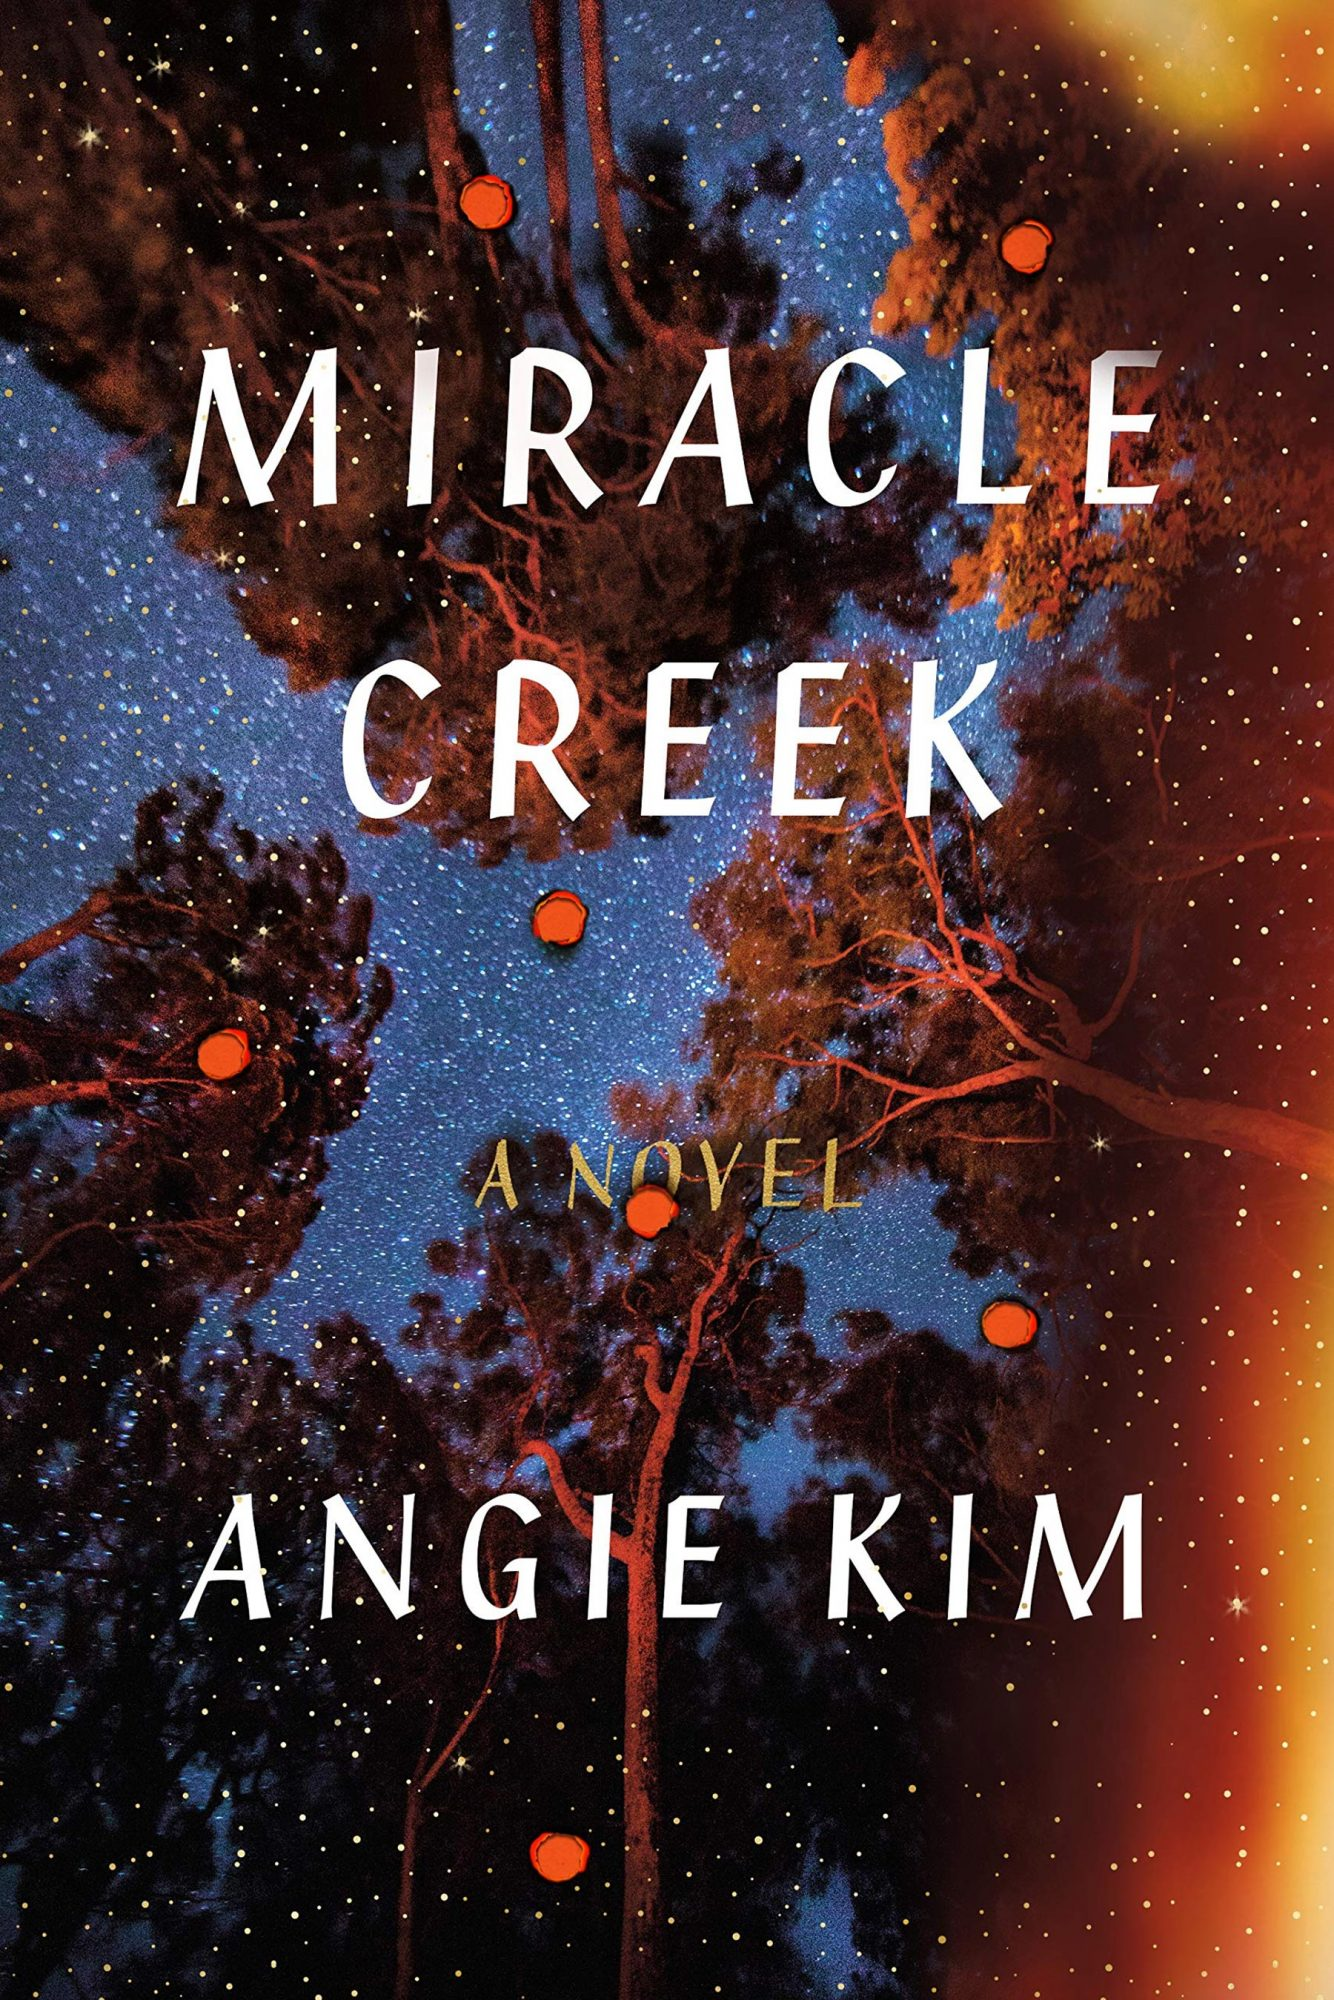 Miracle Creek by Angie Kim Publisher: Sarah Crichton Books